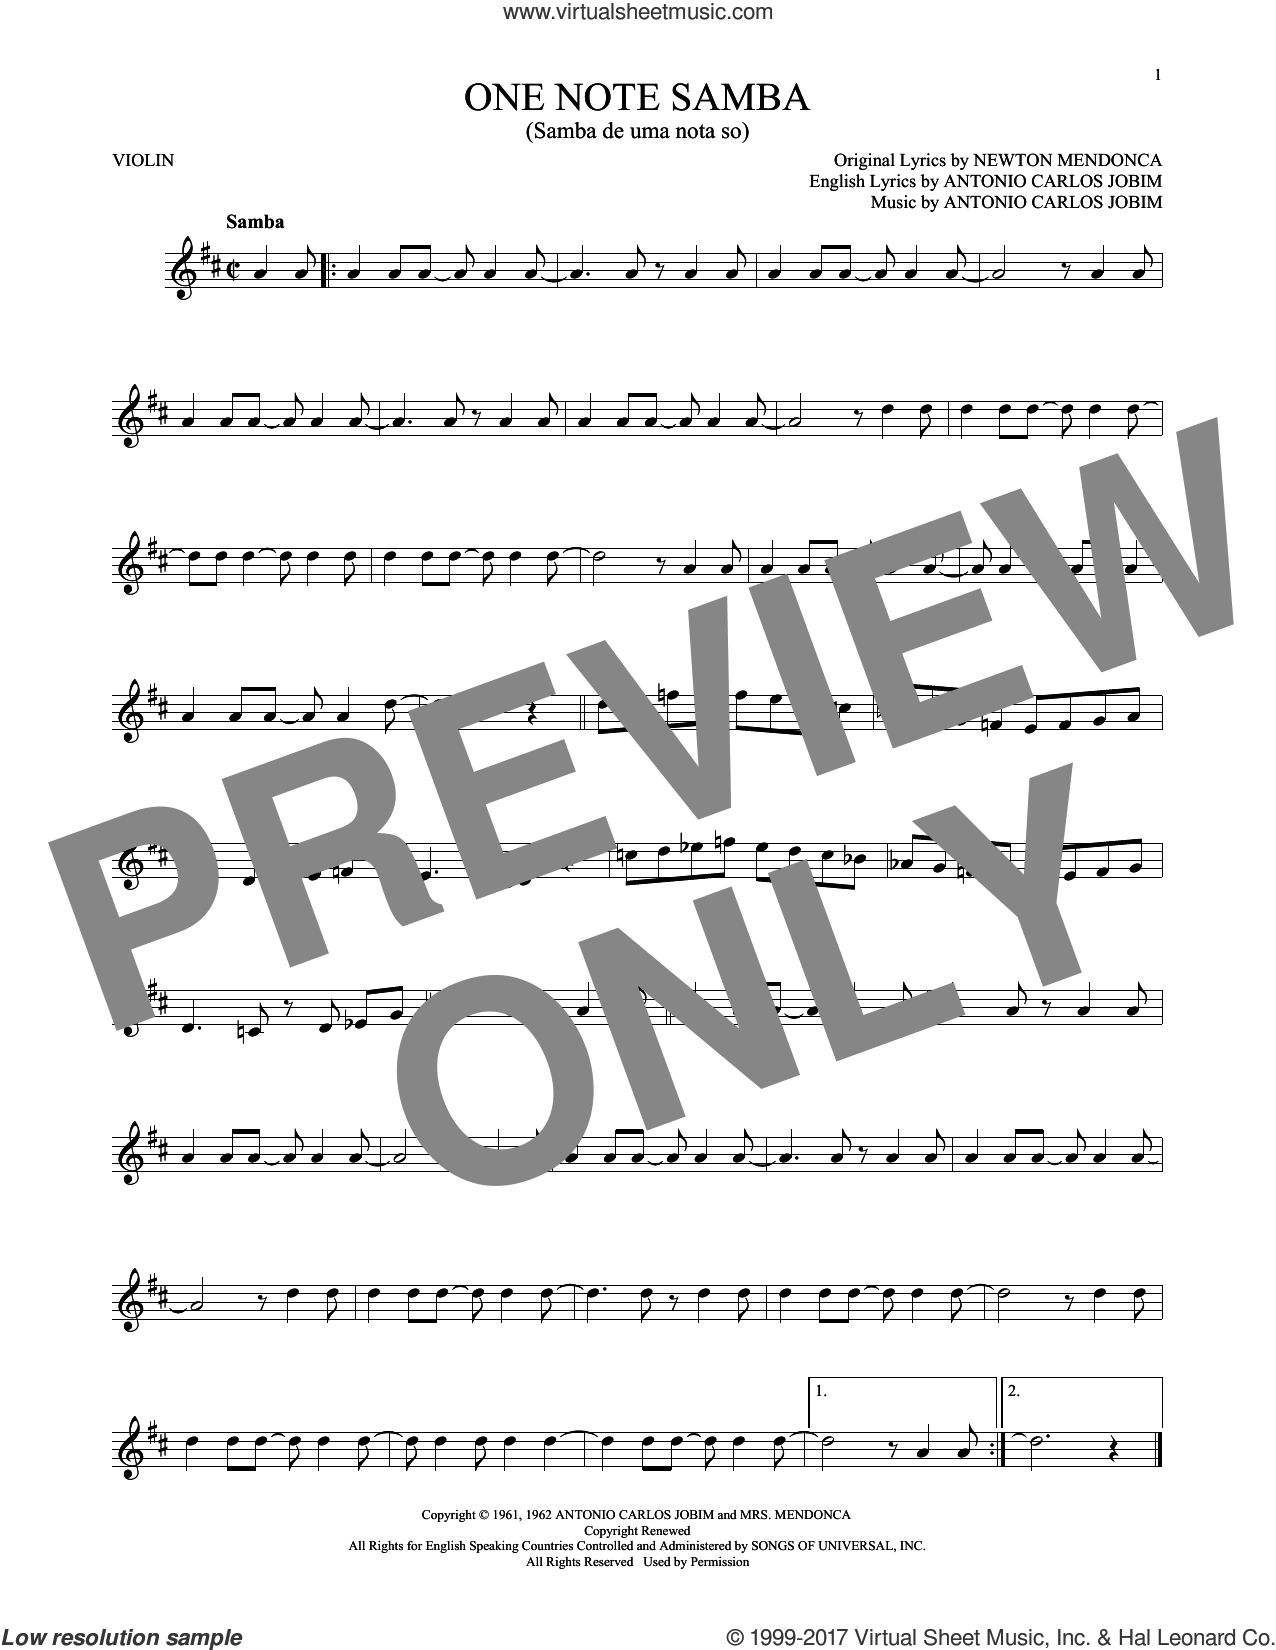 One Note Samba (Samba De Uma Nota So) sheet music for violin solo by Antonio Carlos Jobim, Pat Thomas and Newton Mendonca, intermediate skill level